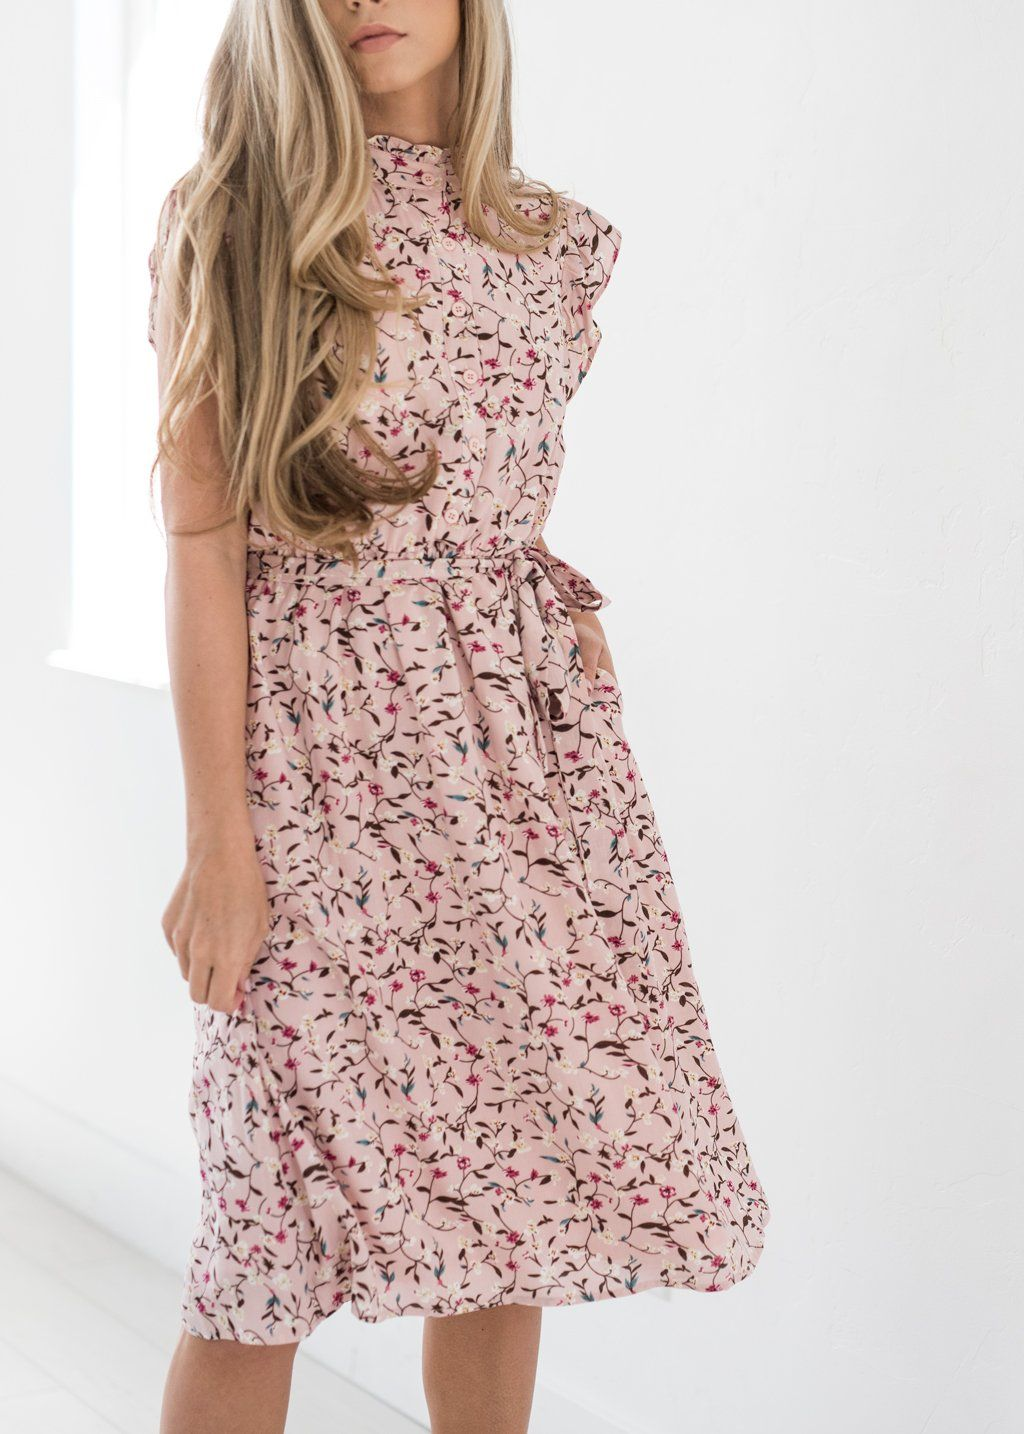 5dbc37c8360 Color Me Pink Floral Ruffle Dress-JessaKae